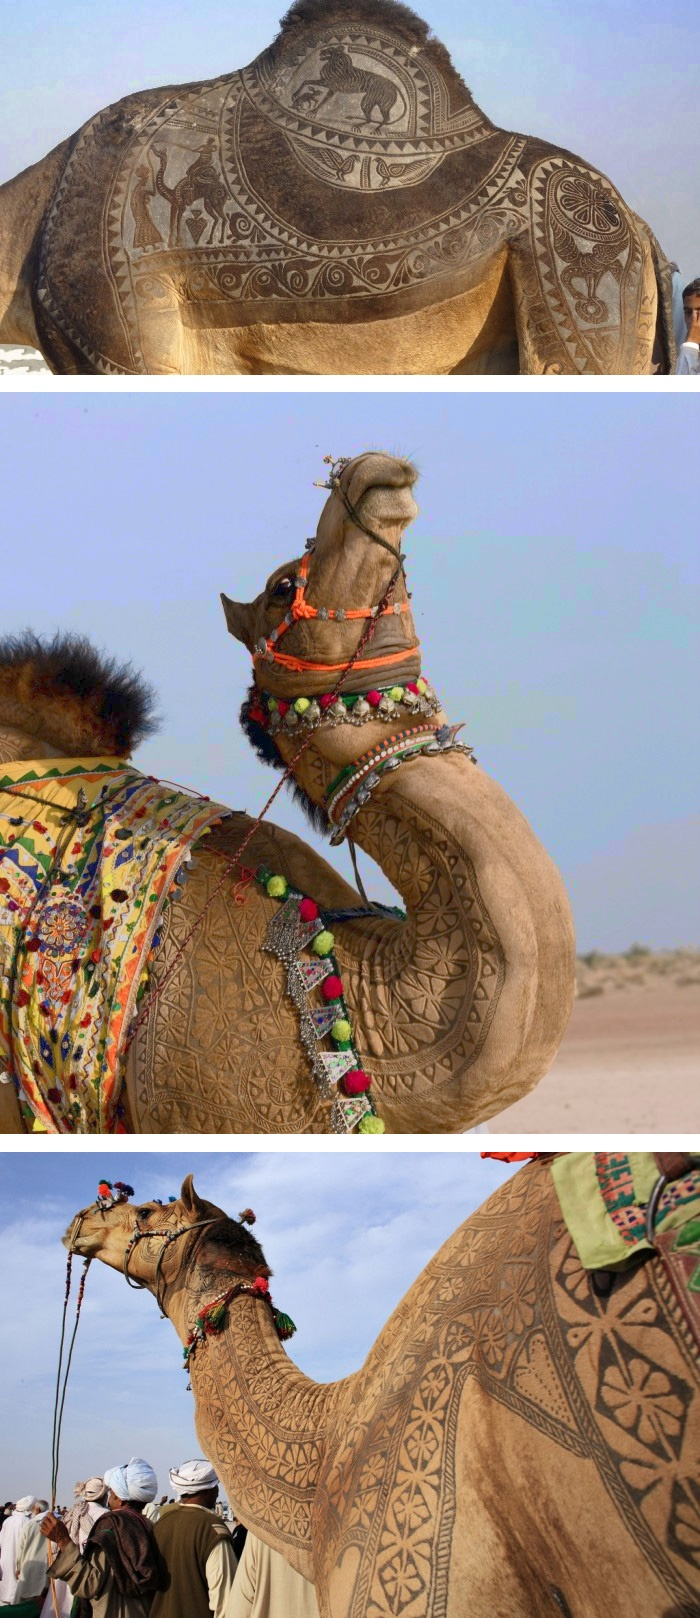 Camel tattoos - It takes about 3 years to make an engraved tatoo for an individual camel. First 2 years, there is just growing the hair and starts trimming. Desert Inhabitant don't use engraved iron for the camels. They just cut and dye the camel hair.     Ph: Osakabe Yasuo & Steve Hoge.